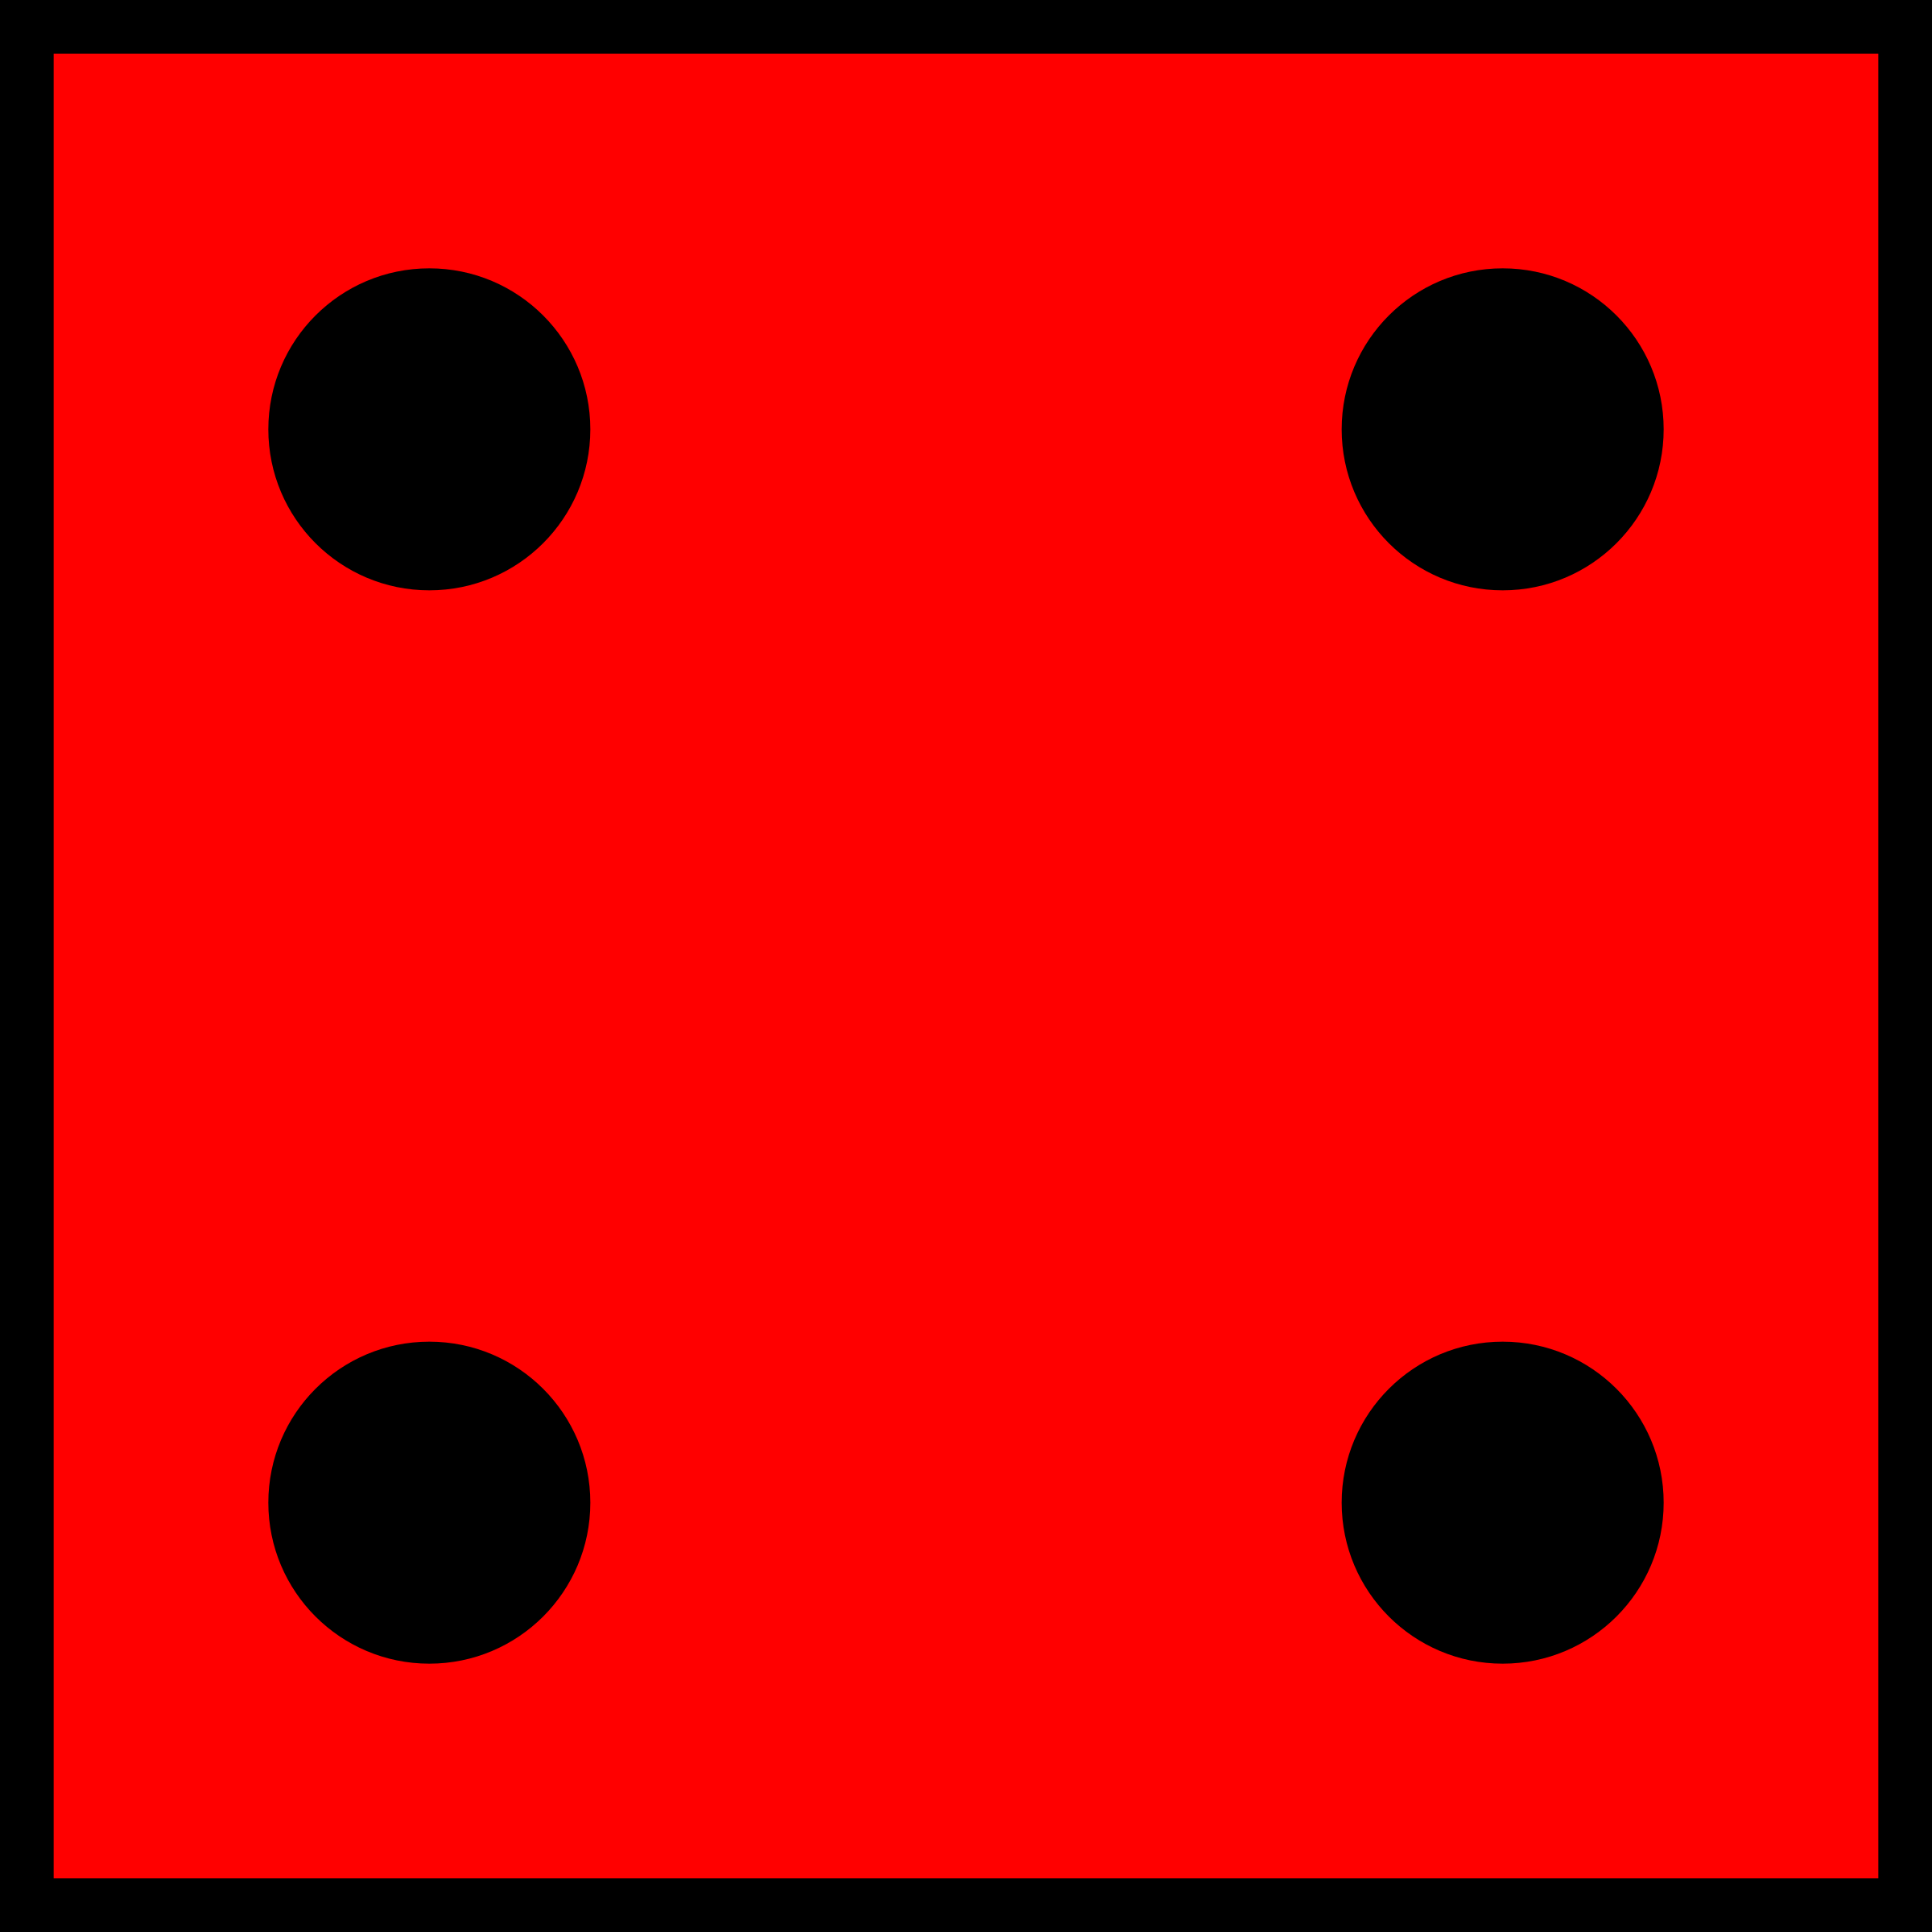 Dice clipart number 4. Red die